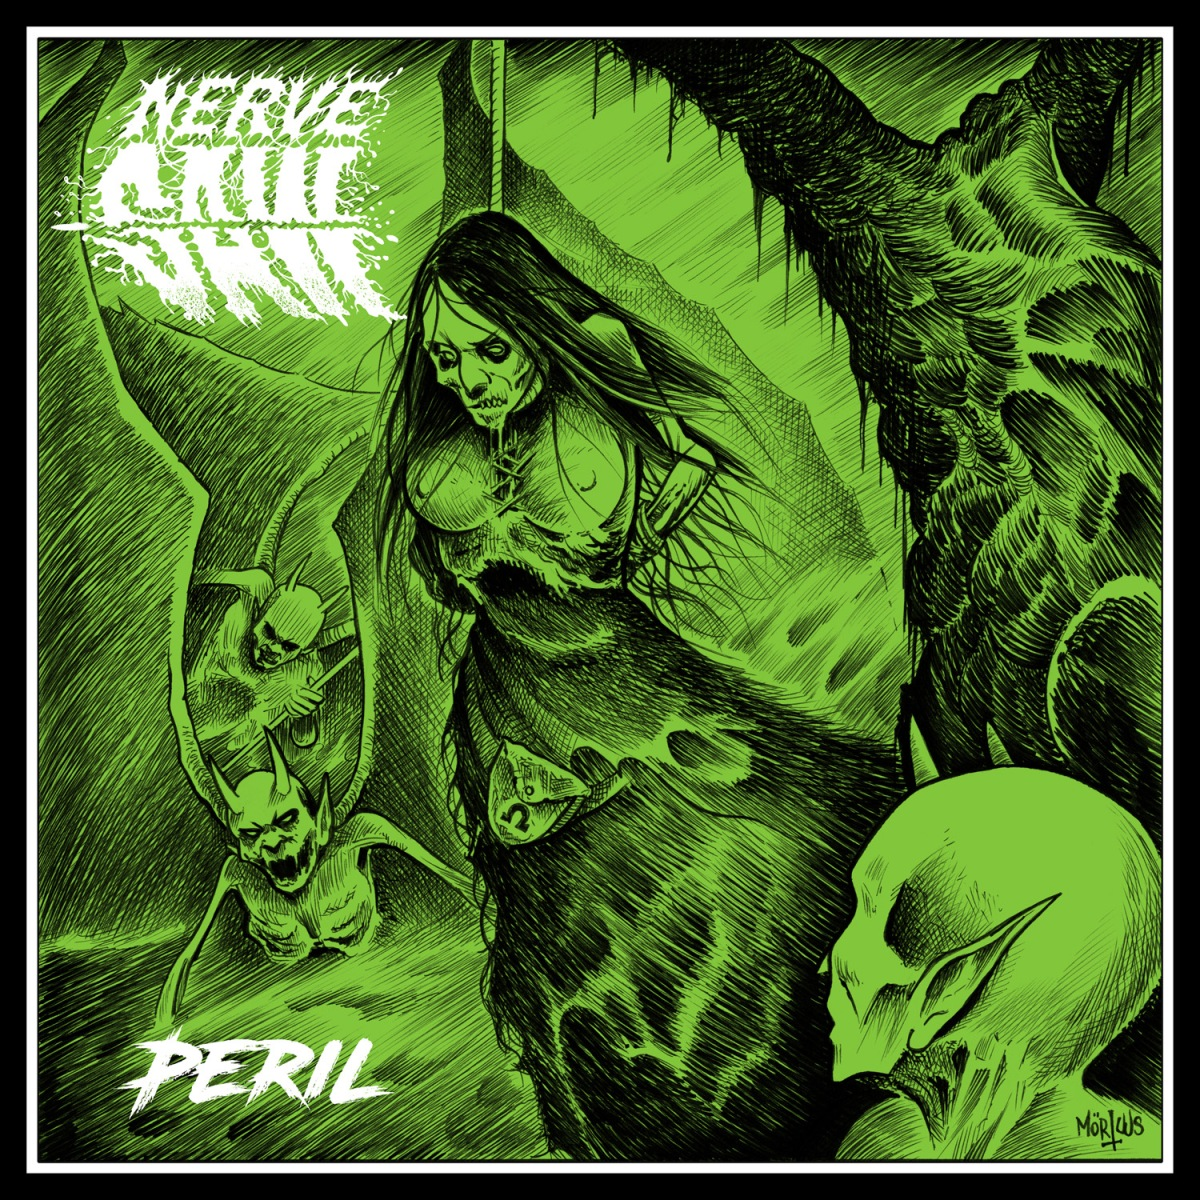 Nerve Saw⛧Peril |review